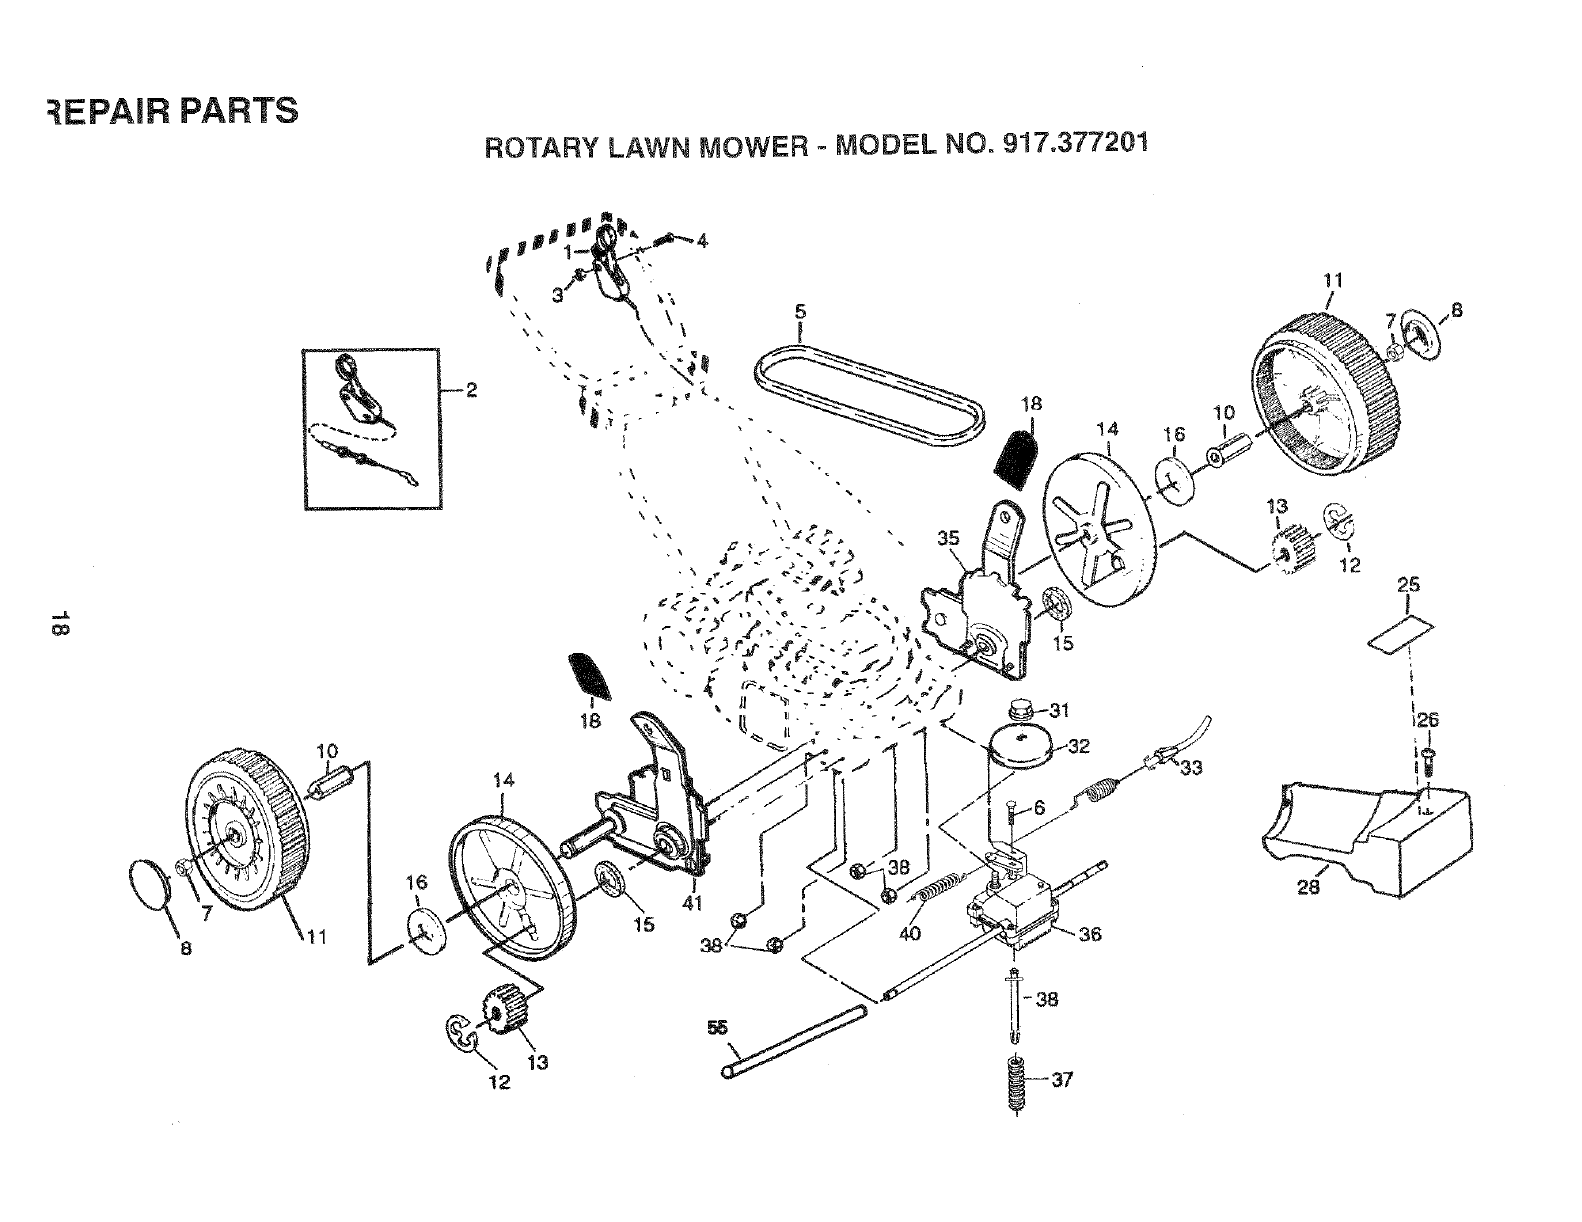 Page 18 of Sears Lawn Mower 917.377201 User Guide